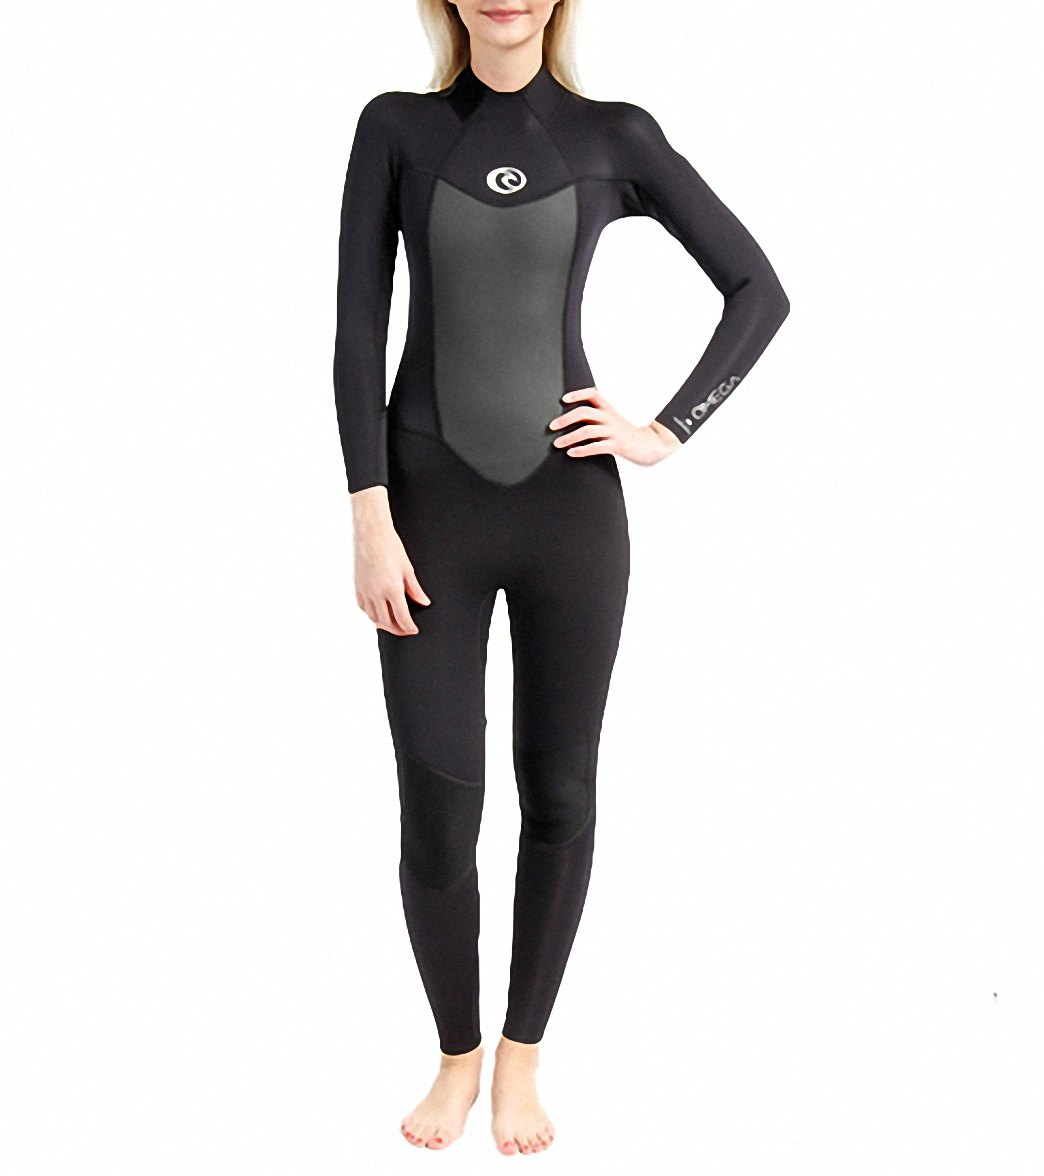 Rip Curl Women s Omega 3 2mm Back Zip Fullsuit Wetsuit Flatlock at ... f55a20365